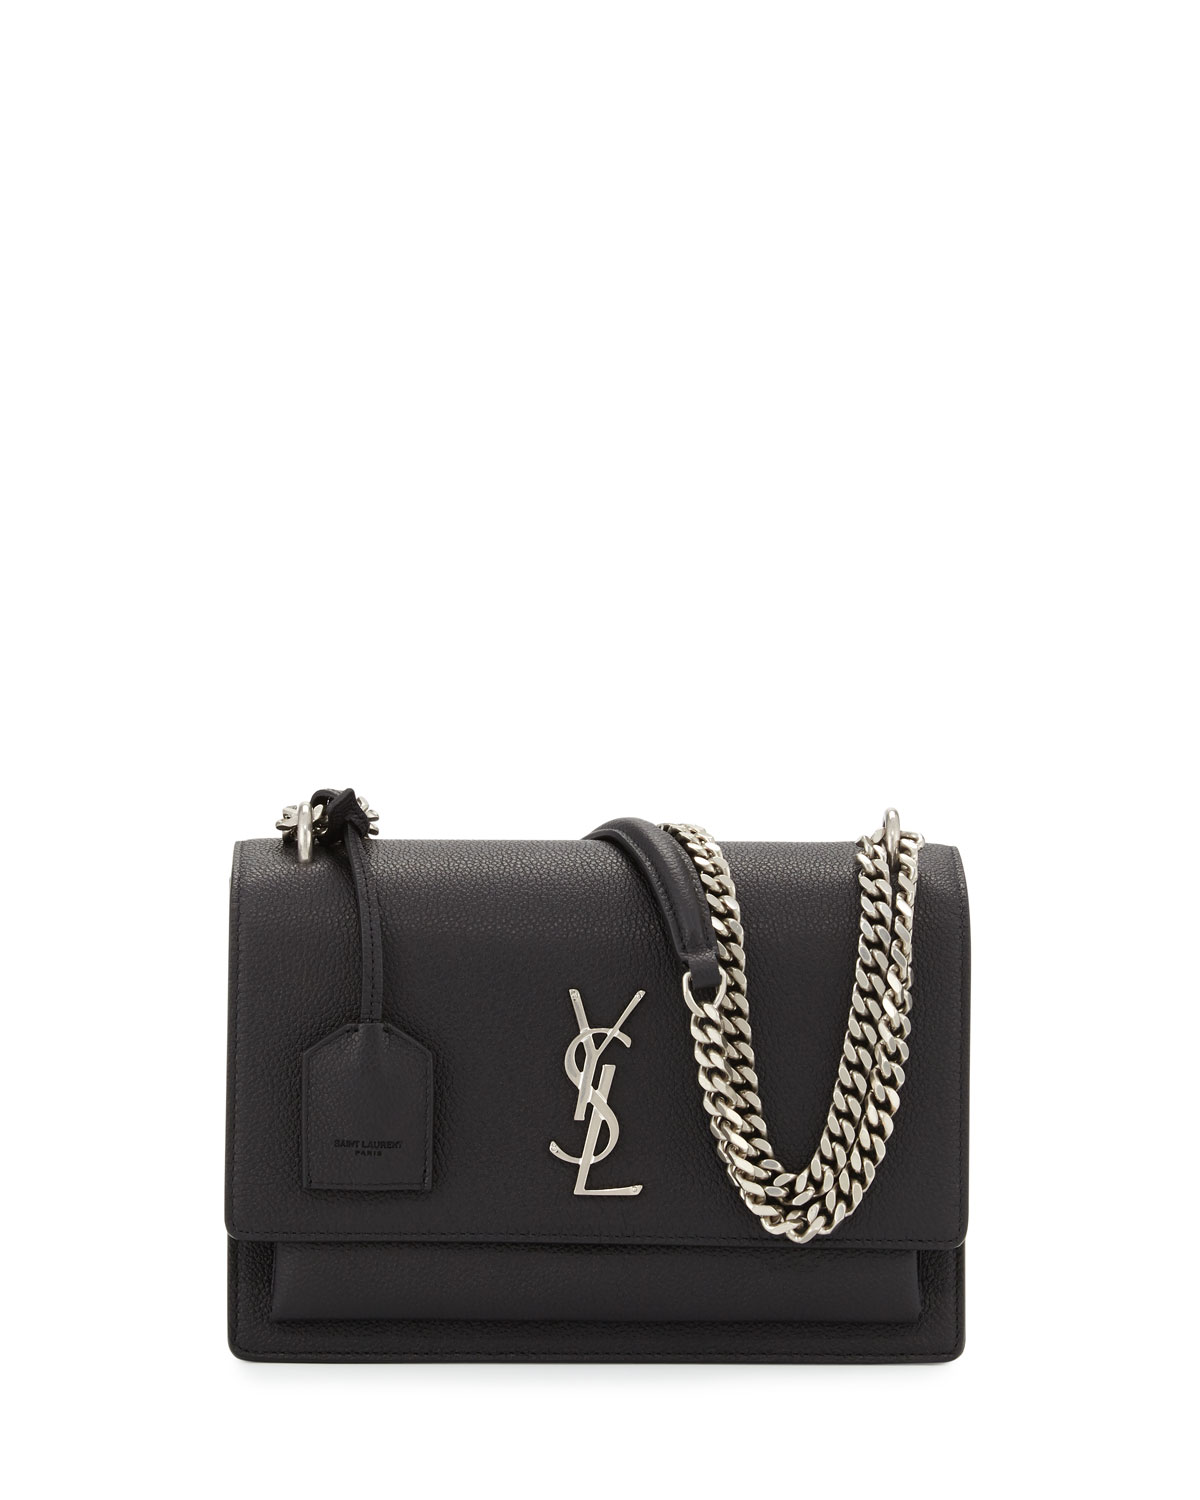 79acf6ae0c1d Saint Laurent High School Medium Chain Satchel Bag